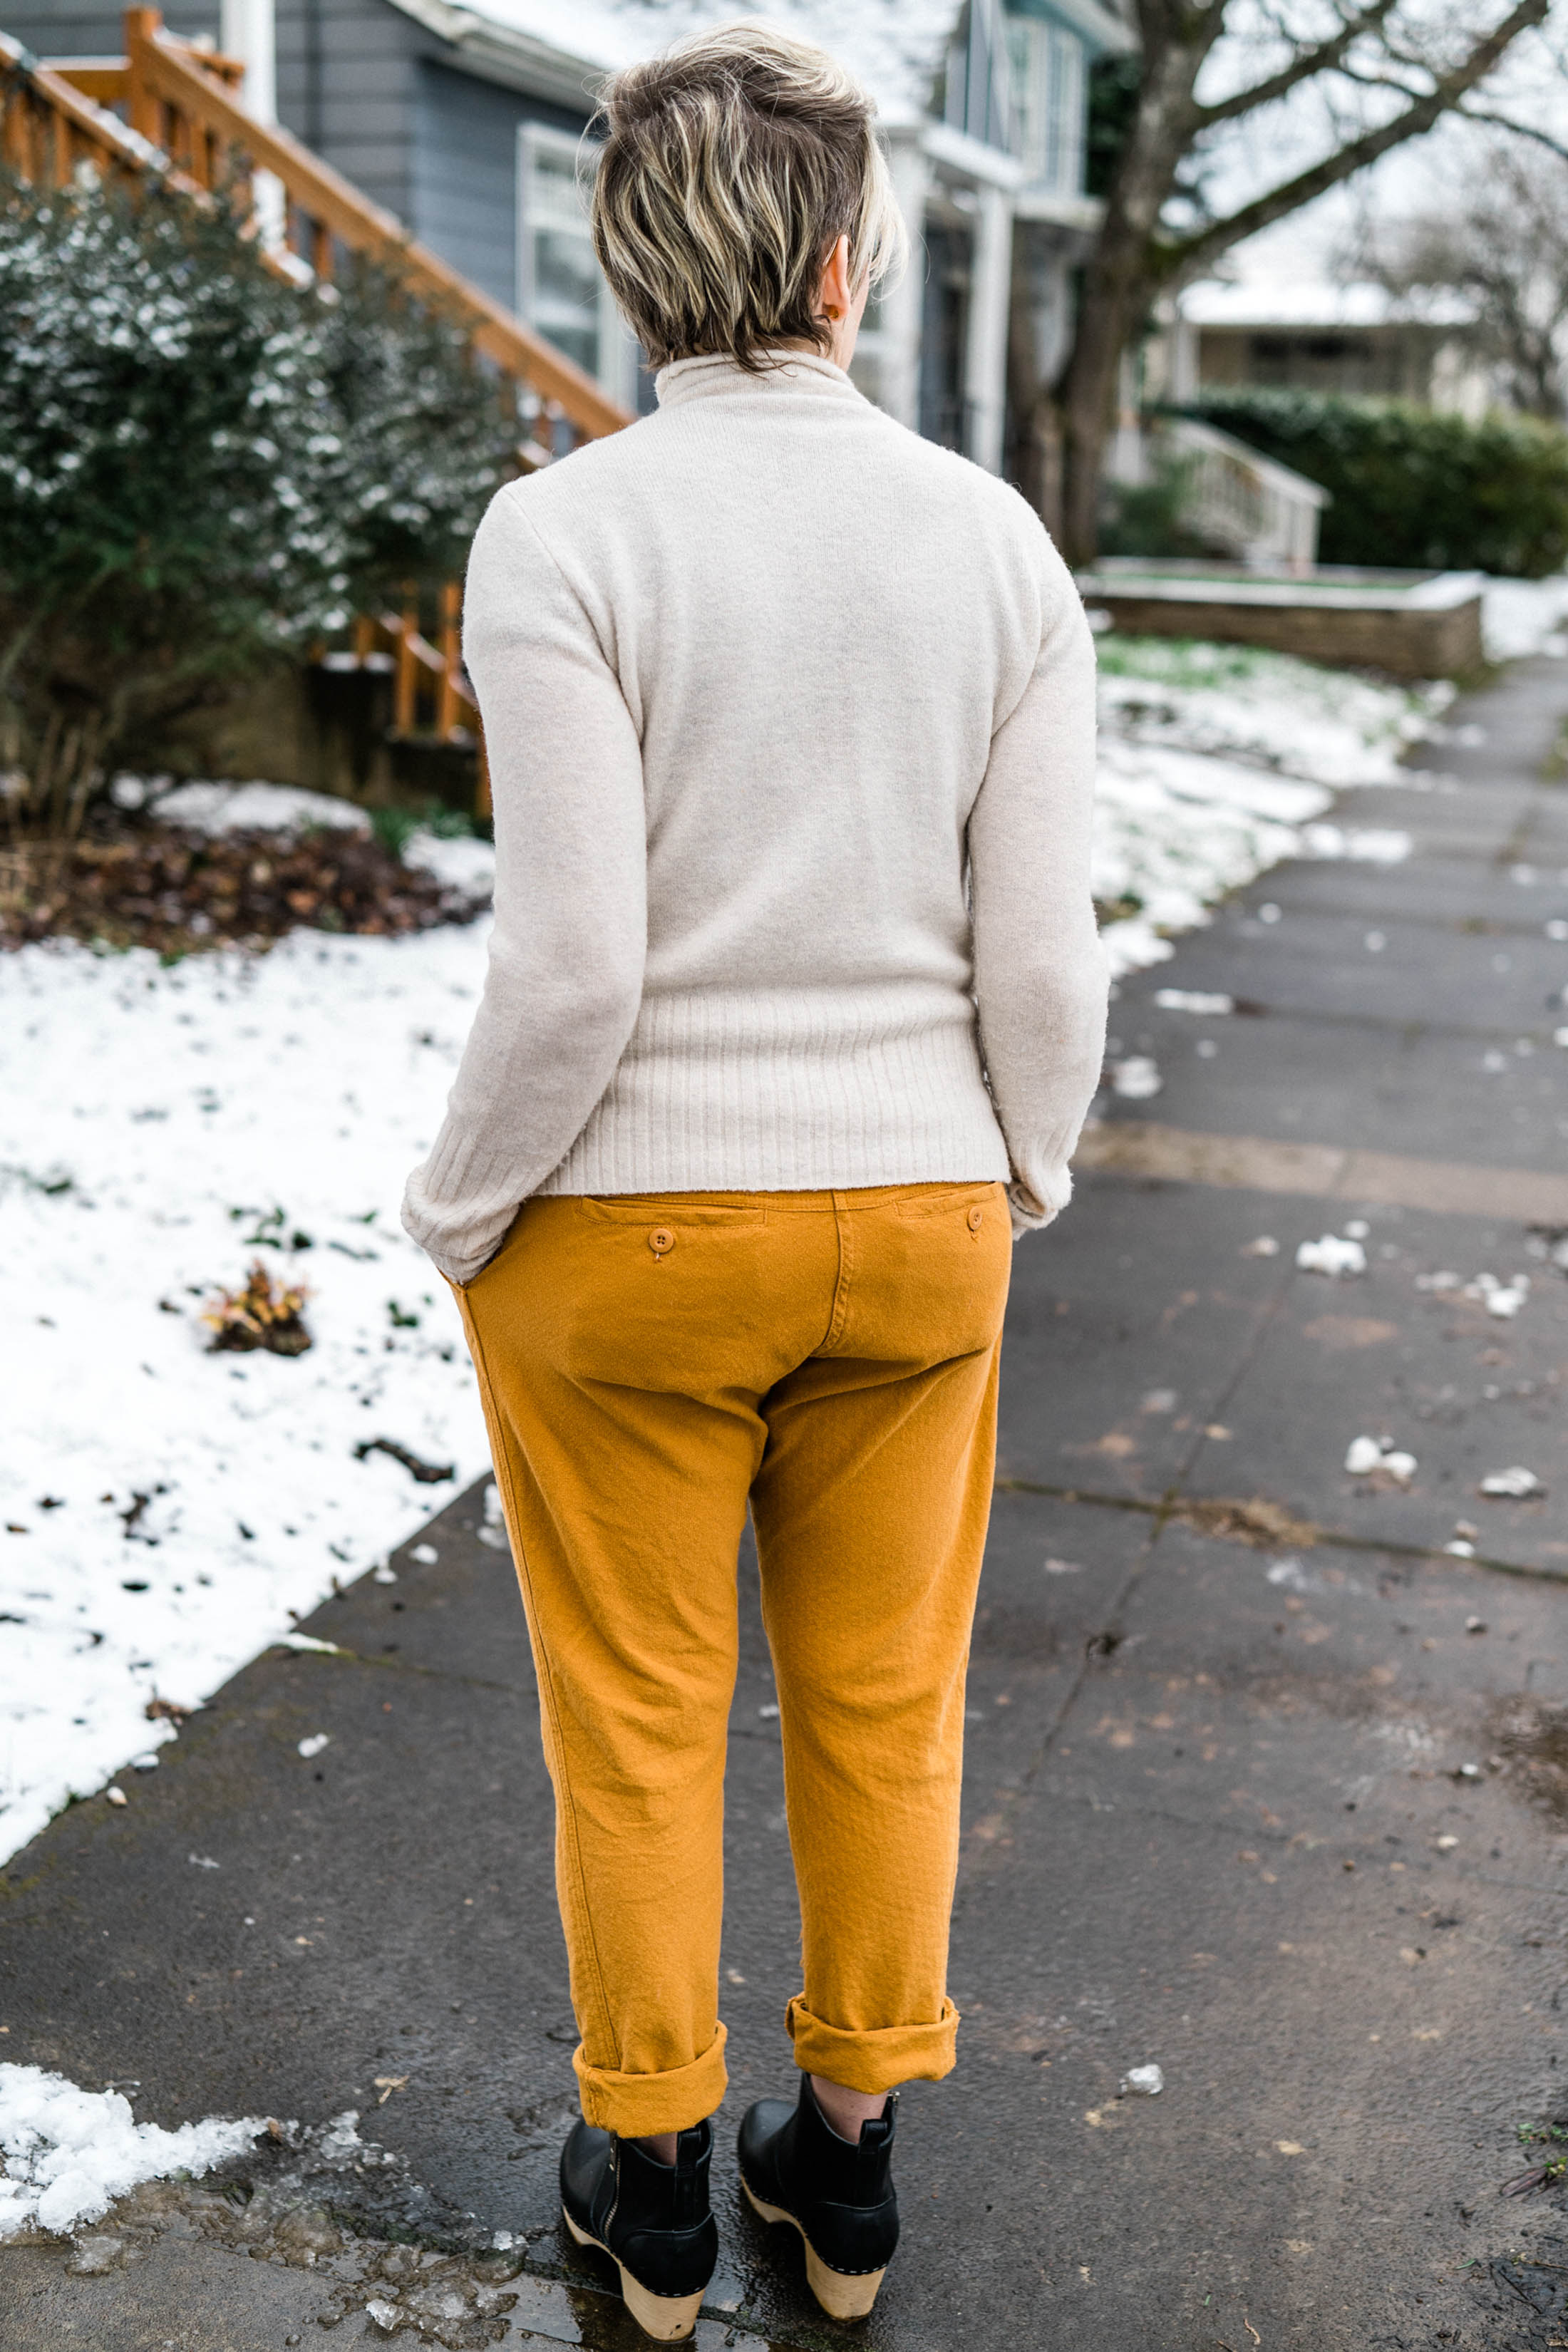 Mustard yellow — the warm neutral we're obsessed with right now — is an oh-so-needed alternative to jeans. THIS pop of color is the new on-trend go-to.